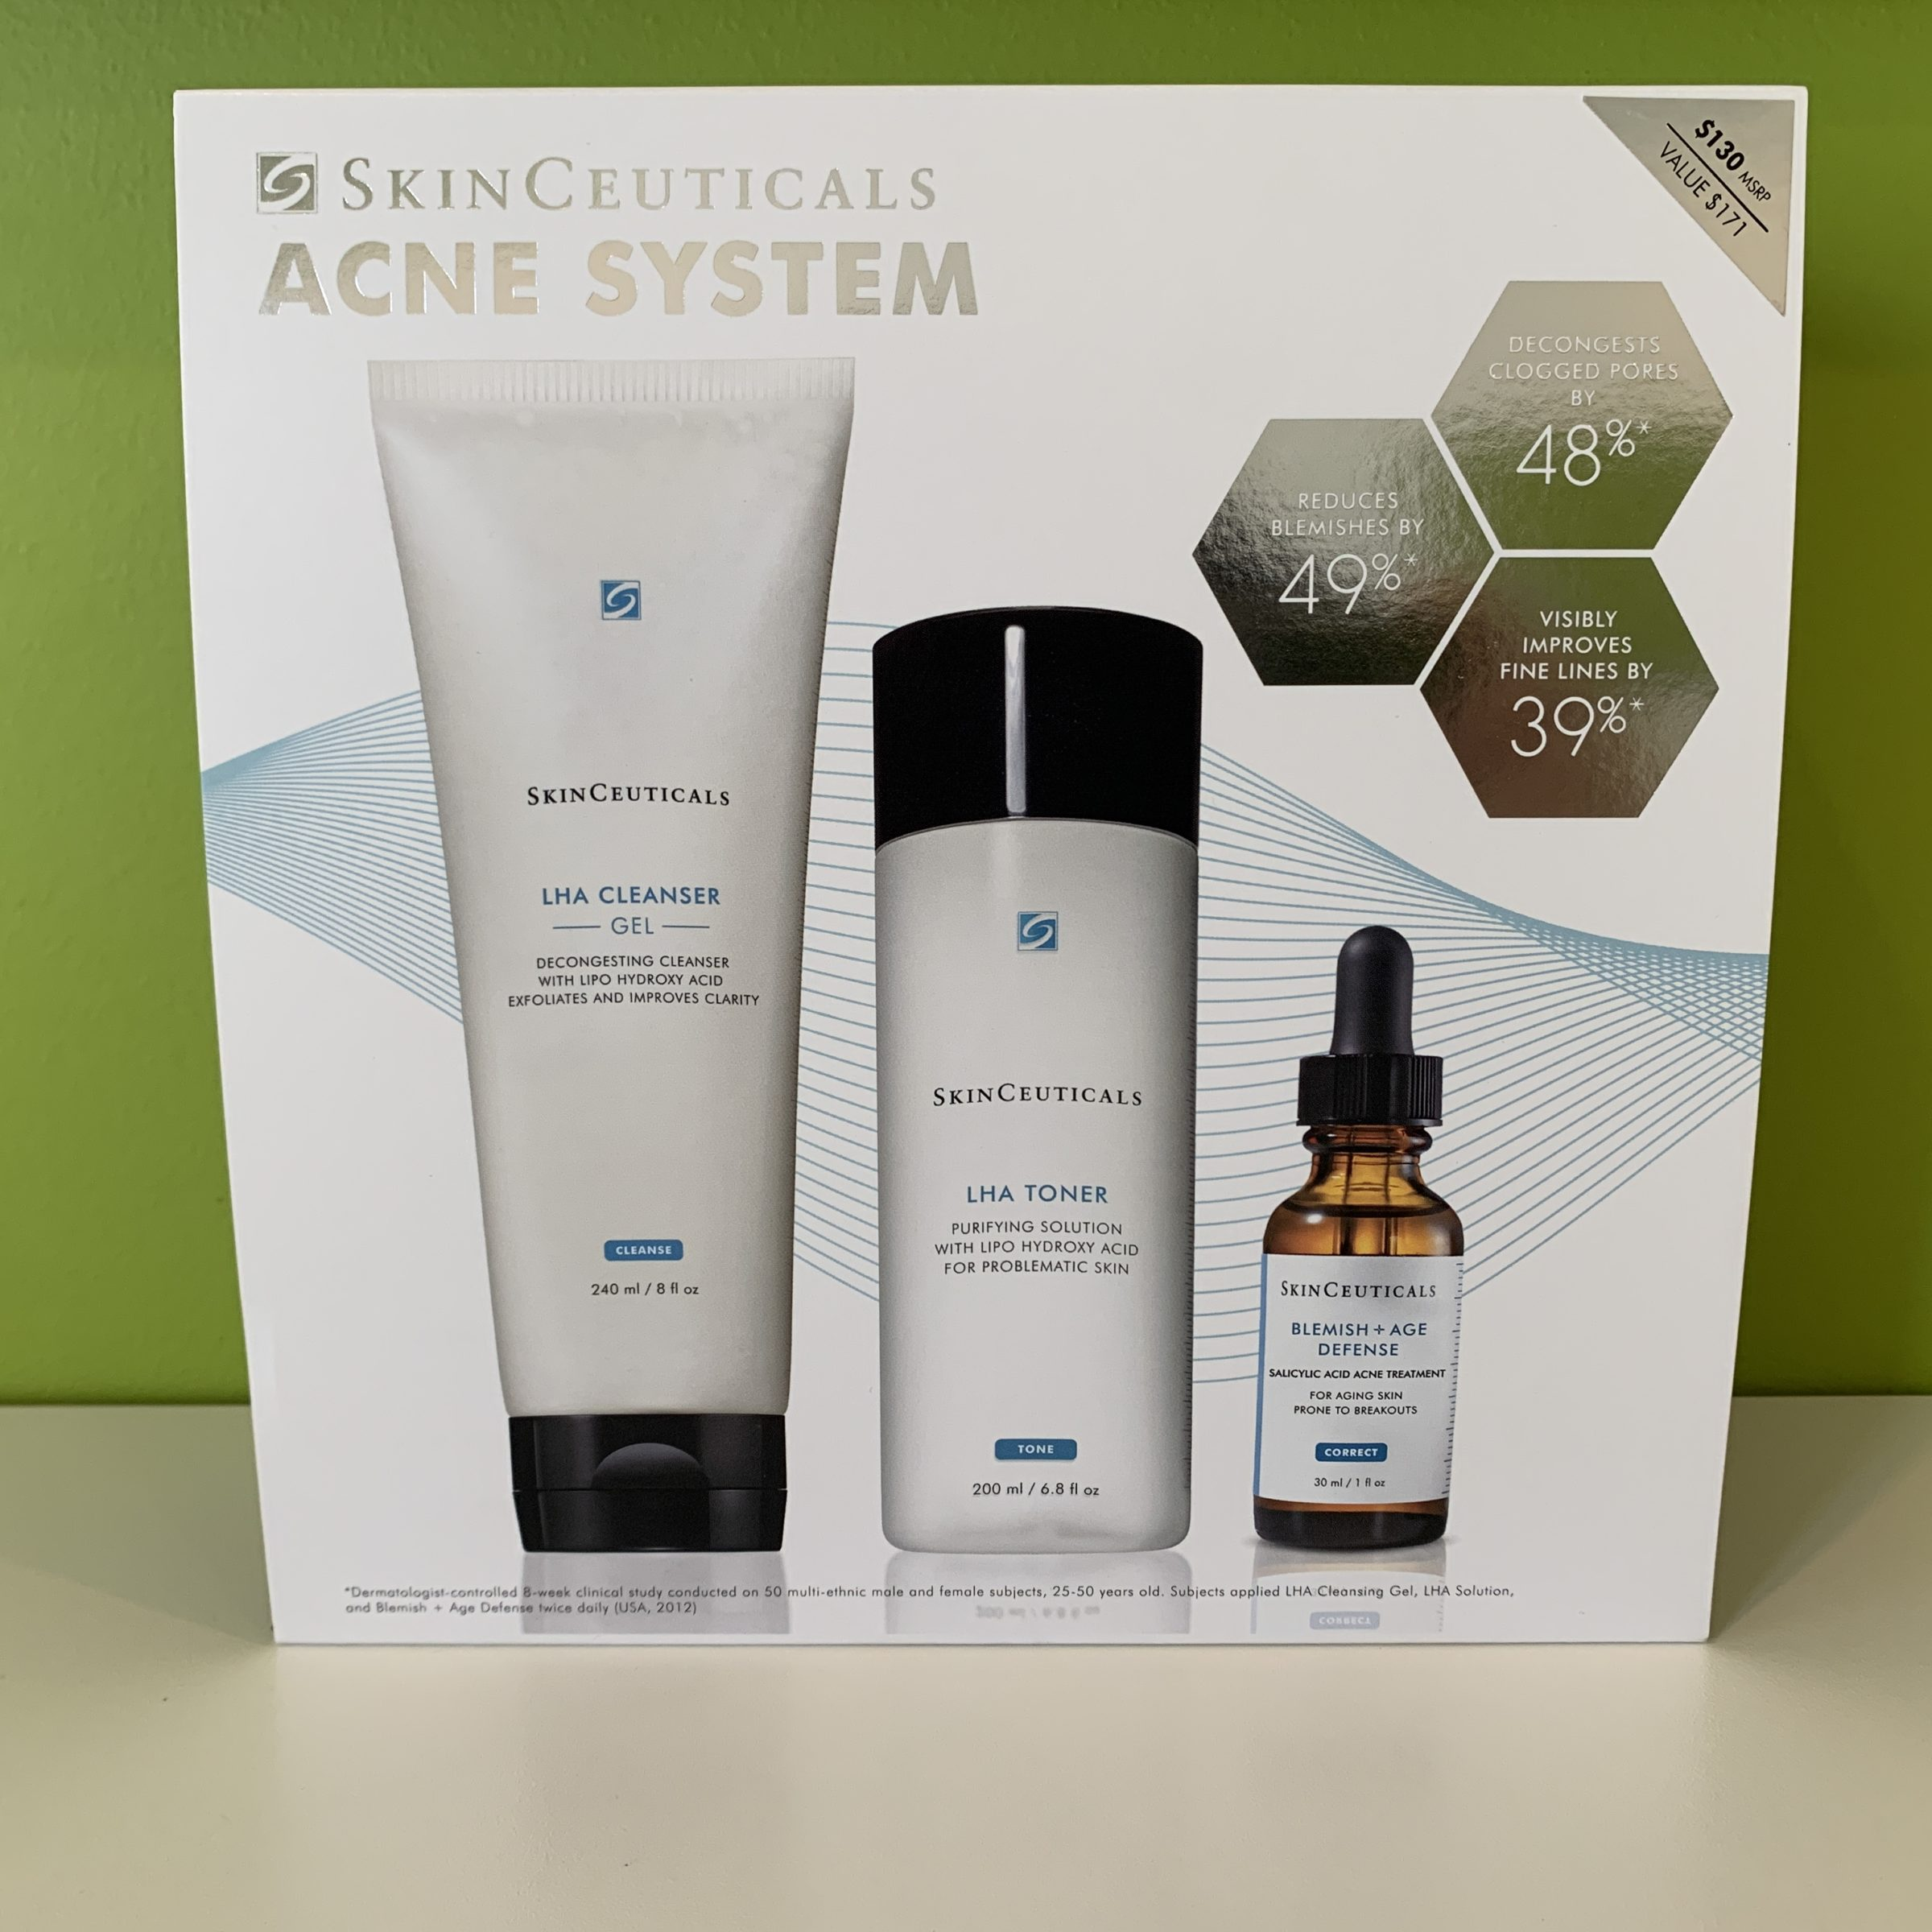 This three-step regimen is clinically proven to reduce sebum and improve fine lines. Formulated to treat adult acne, these products also correct the signs of damage resulting from blemishes and aging such as enlarged pores, rough texture, and fine lines. LHA Cleansing Gel (240ml): Potent cleanser with LHA, glycolic acid, and salicylic acid unclogs pores, smoothes irregularities, and brightens skin. LHA Toner (200ml): Exfoliating low-pH toner efficiently removes excess residue and surface cells to decongest pores. Blemish + Age Defense (30ml): Targeted, oil-free serum prevents the formation of acne, minimizes blotchiness, and reduces the appearance of fine lines and wrinkles. Find it at Well Medical Arts in West Seattle!